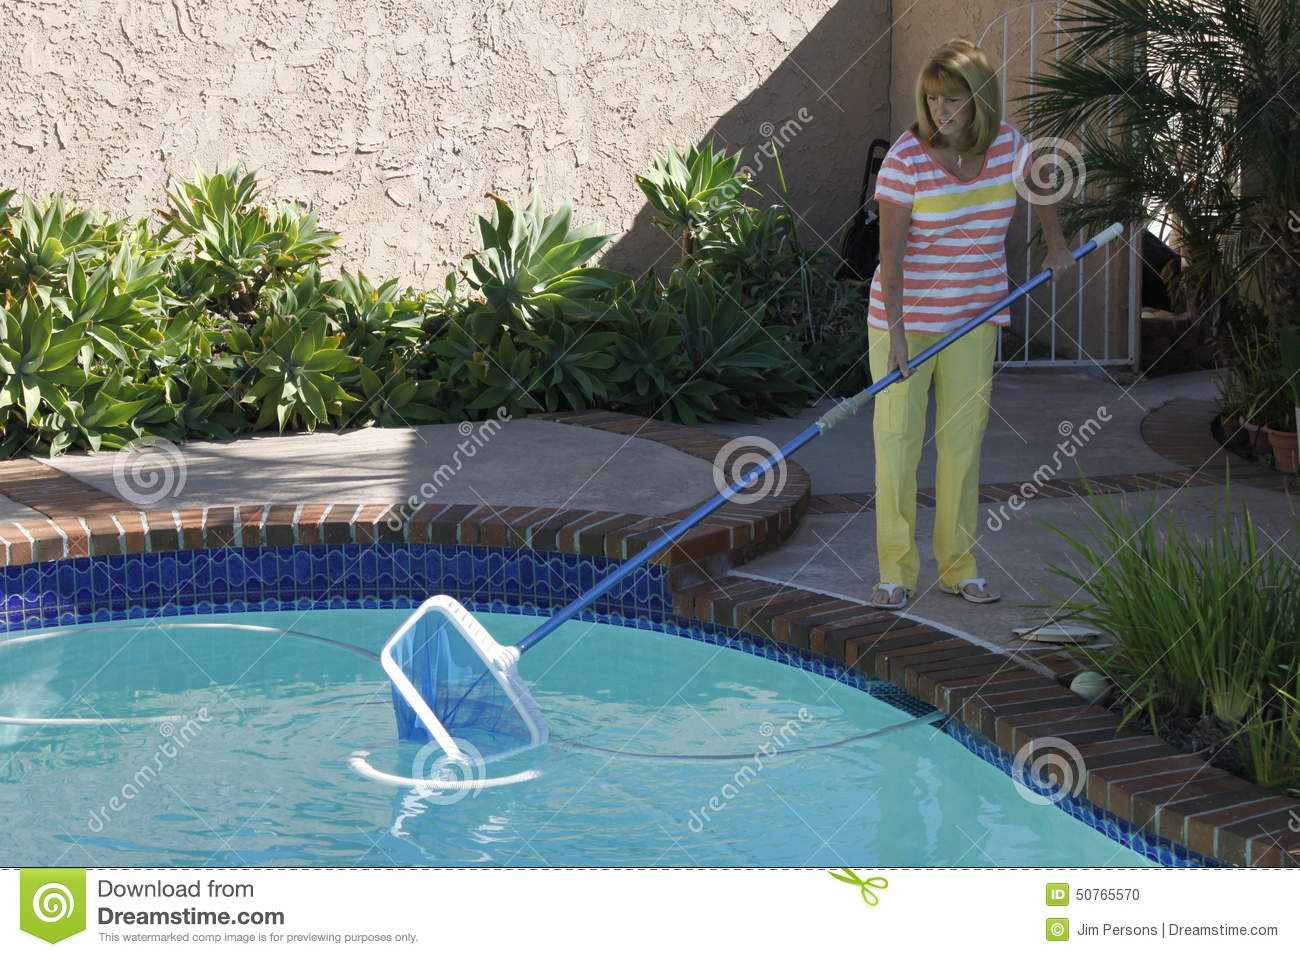 Swimming Pool Cleaning Net : Woman cleaning swimming pool royalty free stock